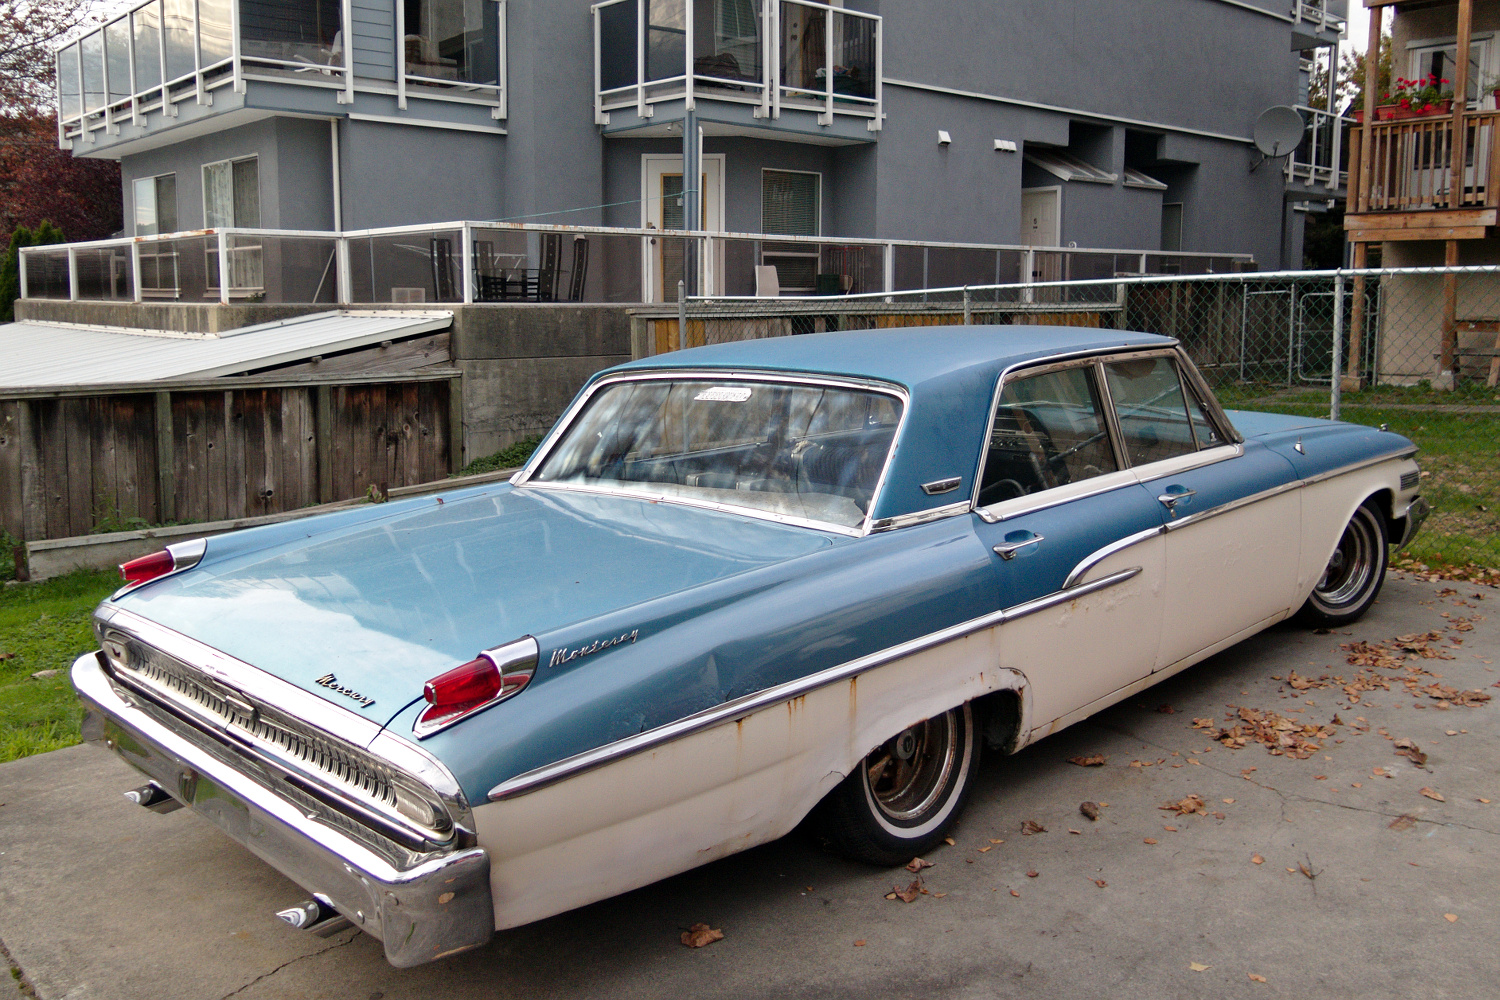 Old Parked Cars Vancouver 1962 Mercury Monterey Custom